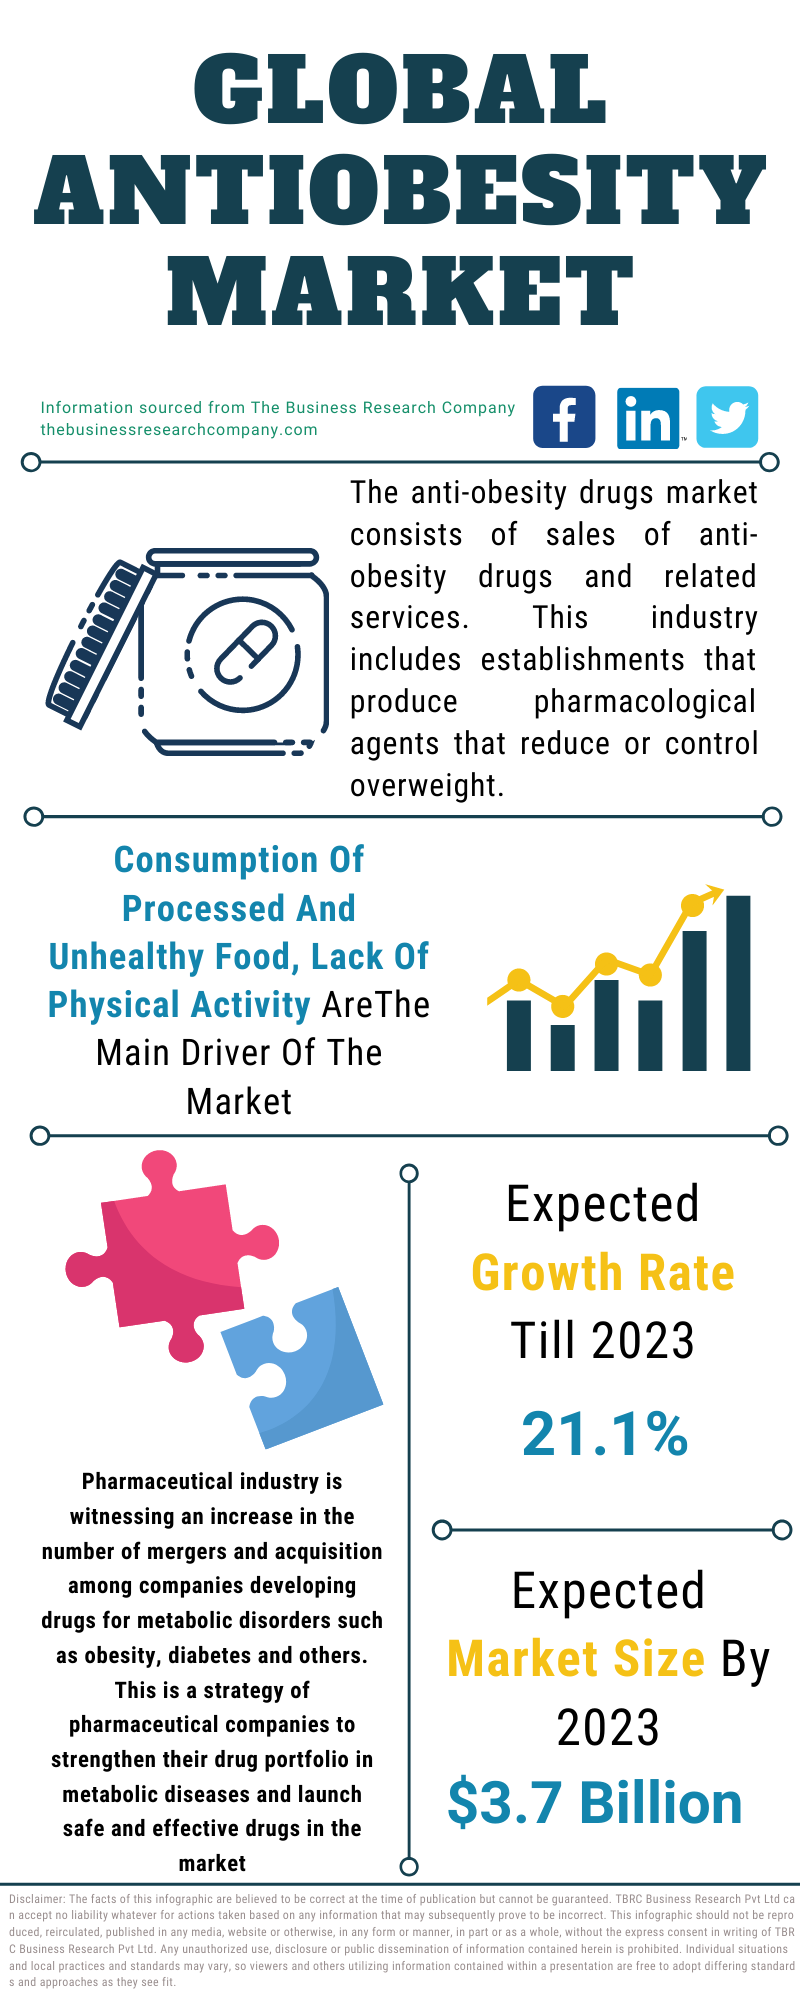 Antiobesity Market